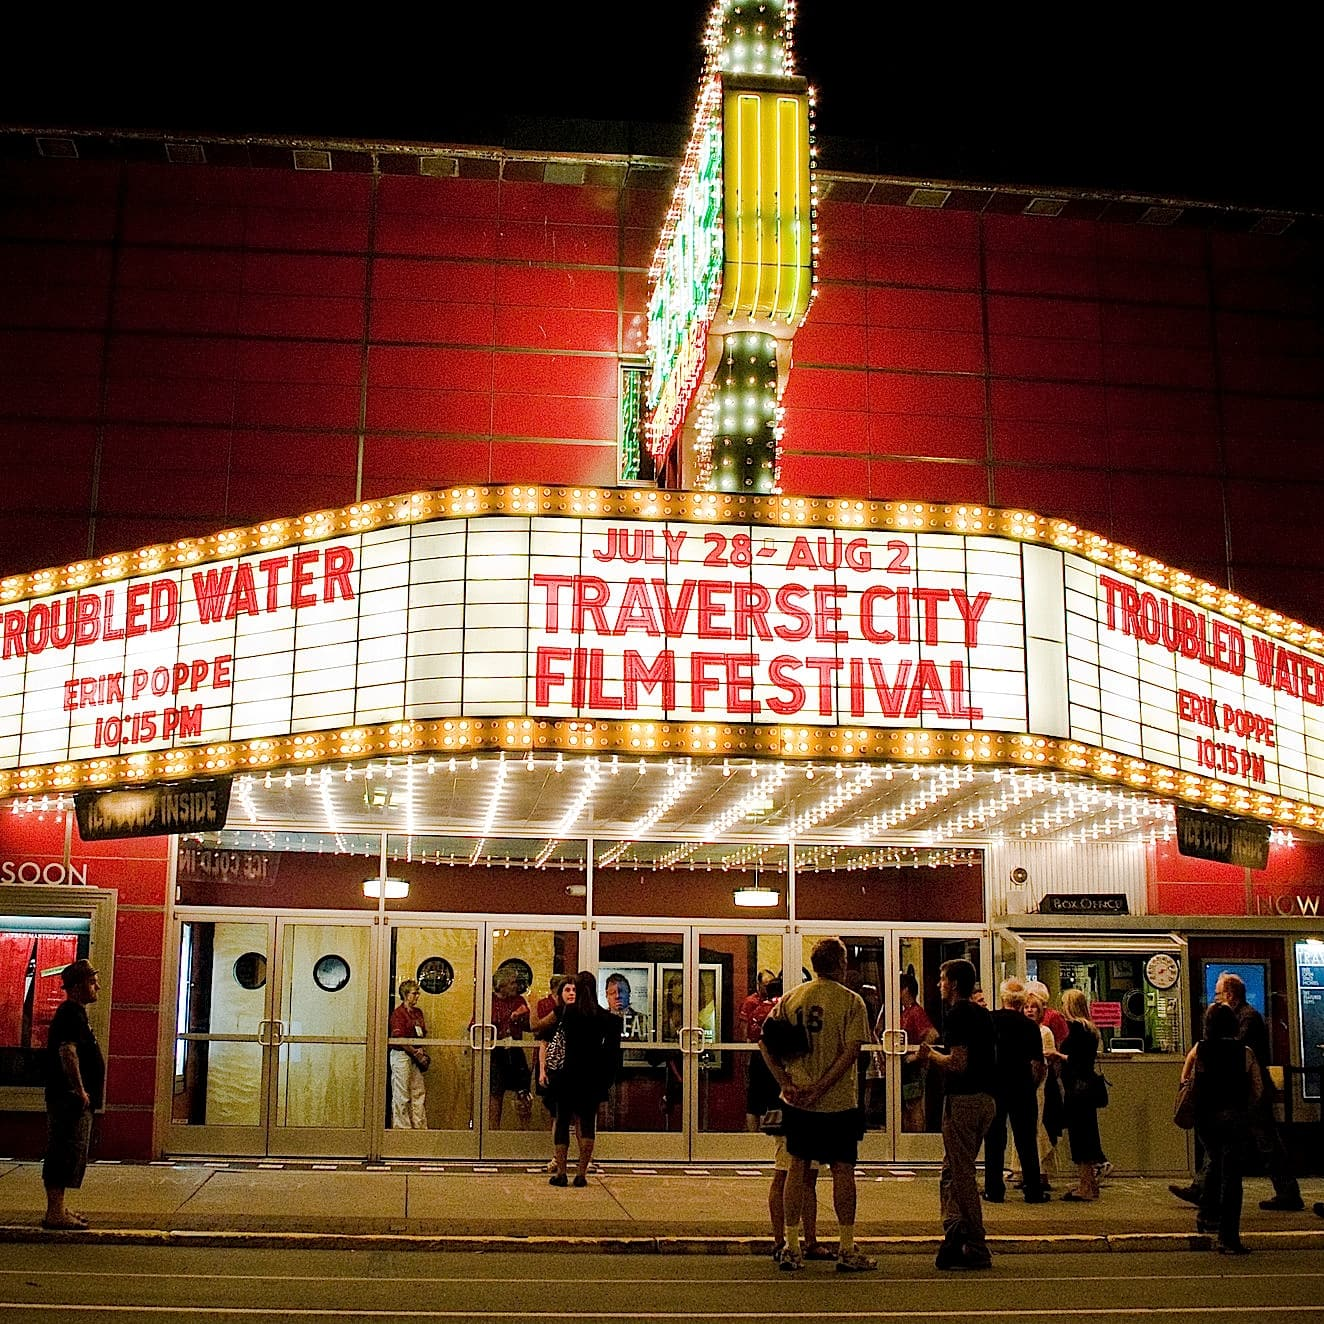 Key benefits of advertising in mynorth filmgoer 2014 for Craft shows in traverse city mi